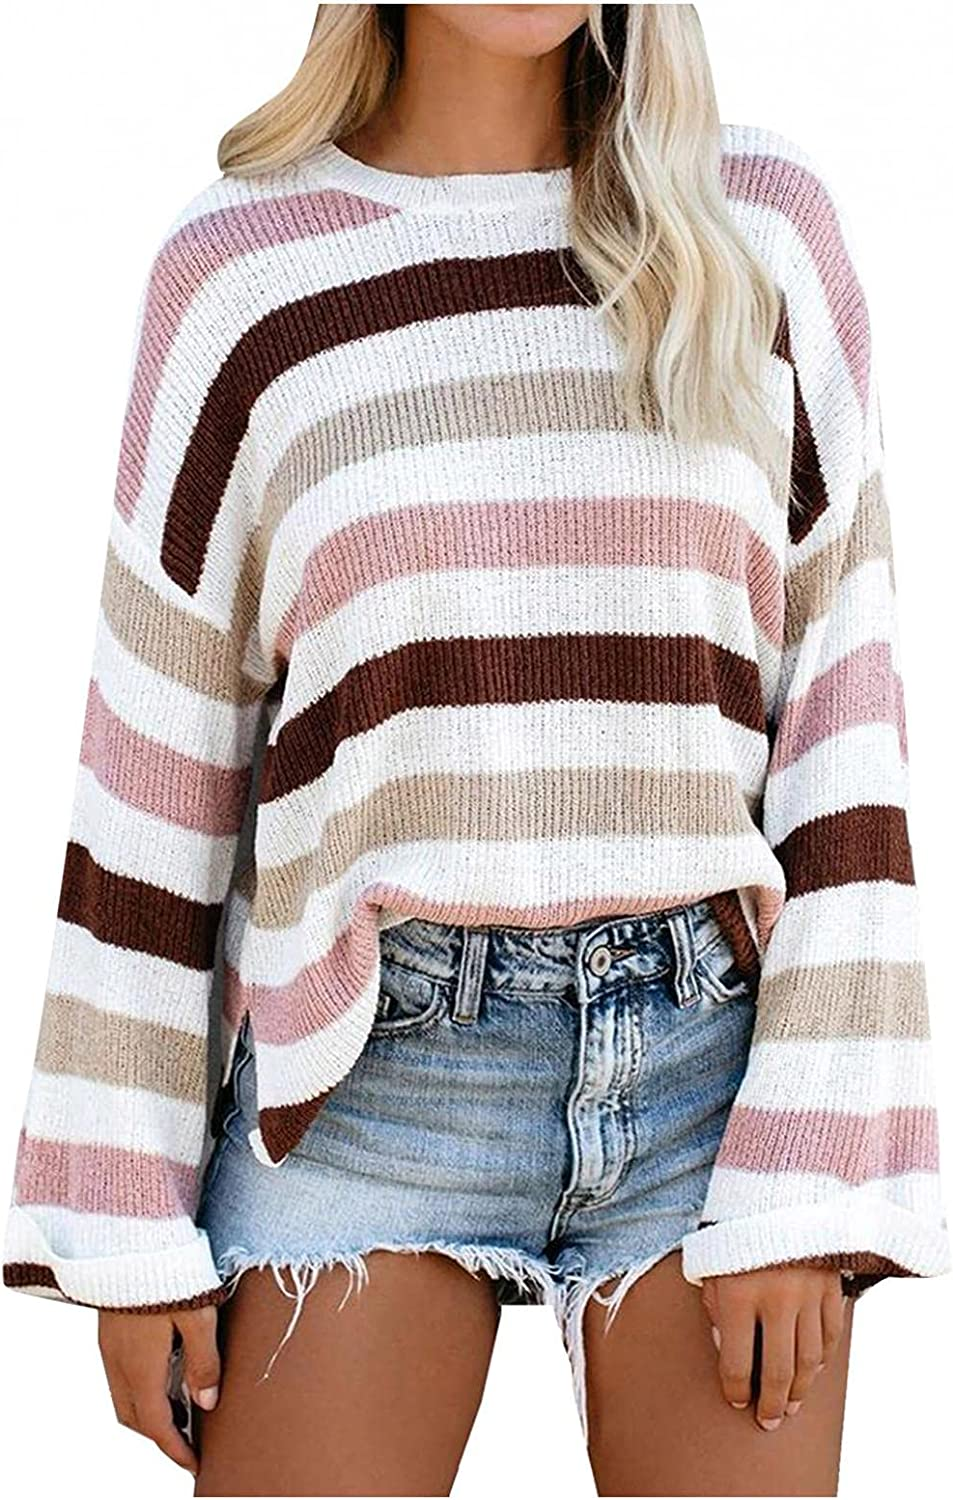 Sunhusing Women's Boat Neck Striped Print Sweater Tops Patchwork Batwing Sleeve Loose Blouse Fall Jumper Pullovers Knitwear